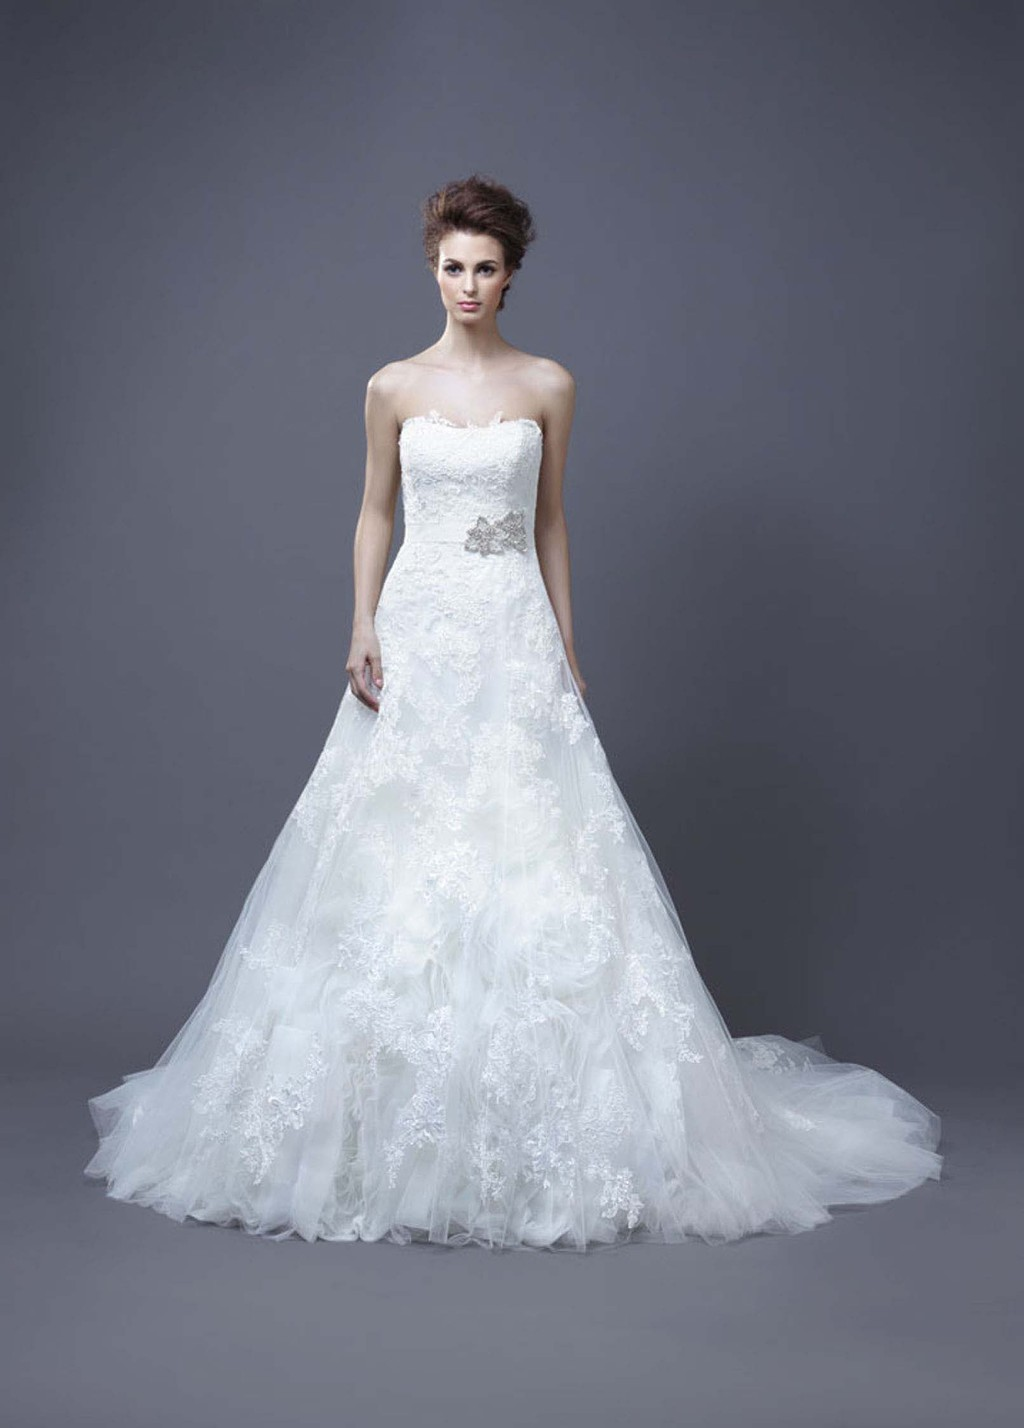 2013 Wedding Dress by Enzoani Bridal Hasina